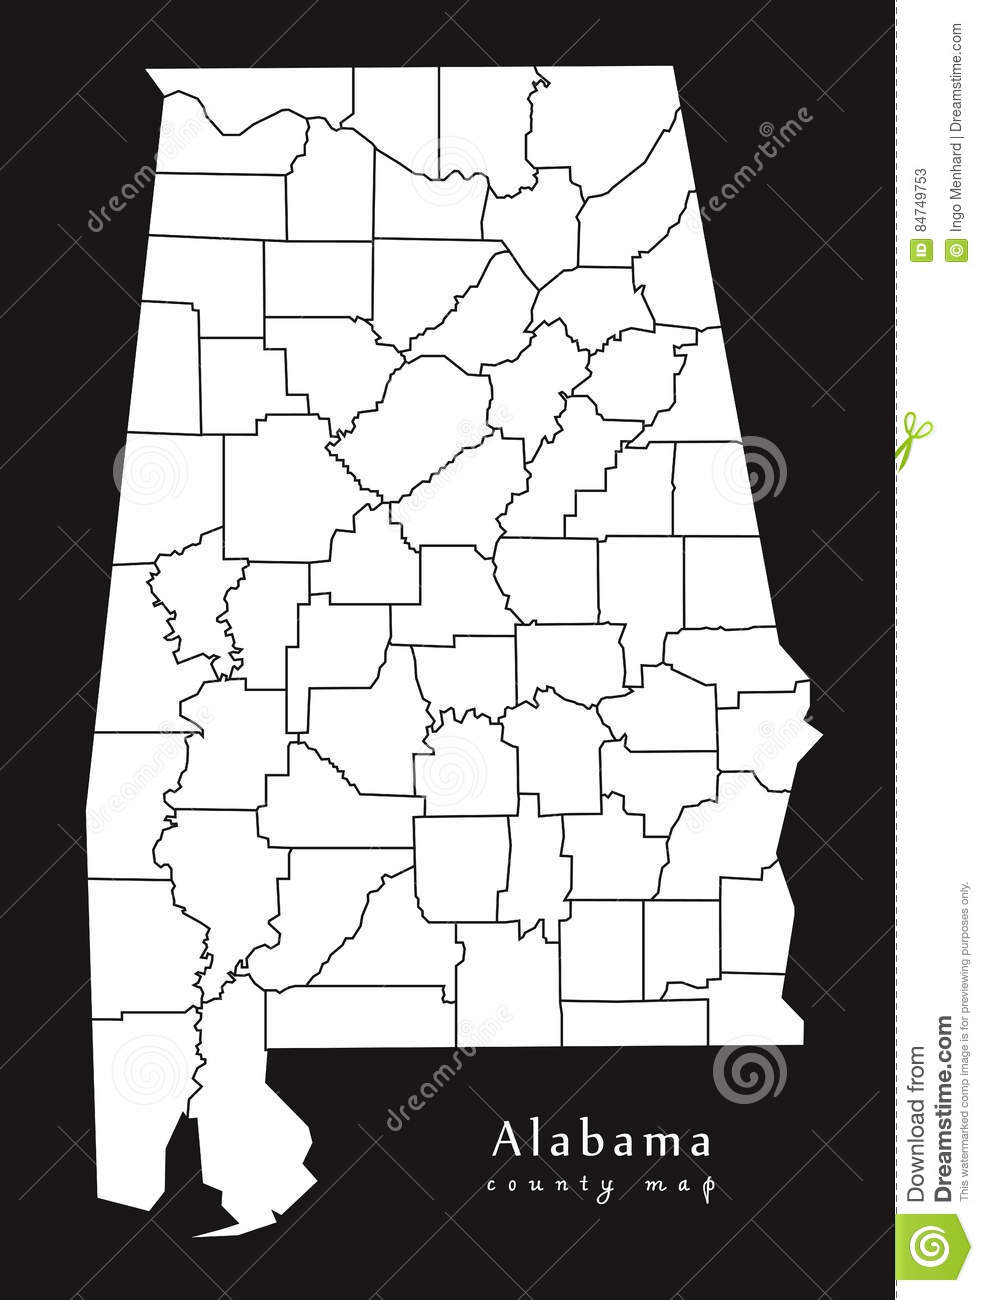 Modern Map Alabama County Map USA Black And White Silhouette - Alabama map usa